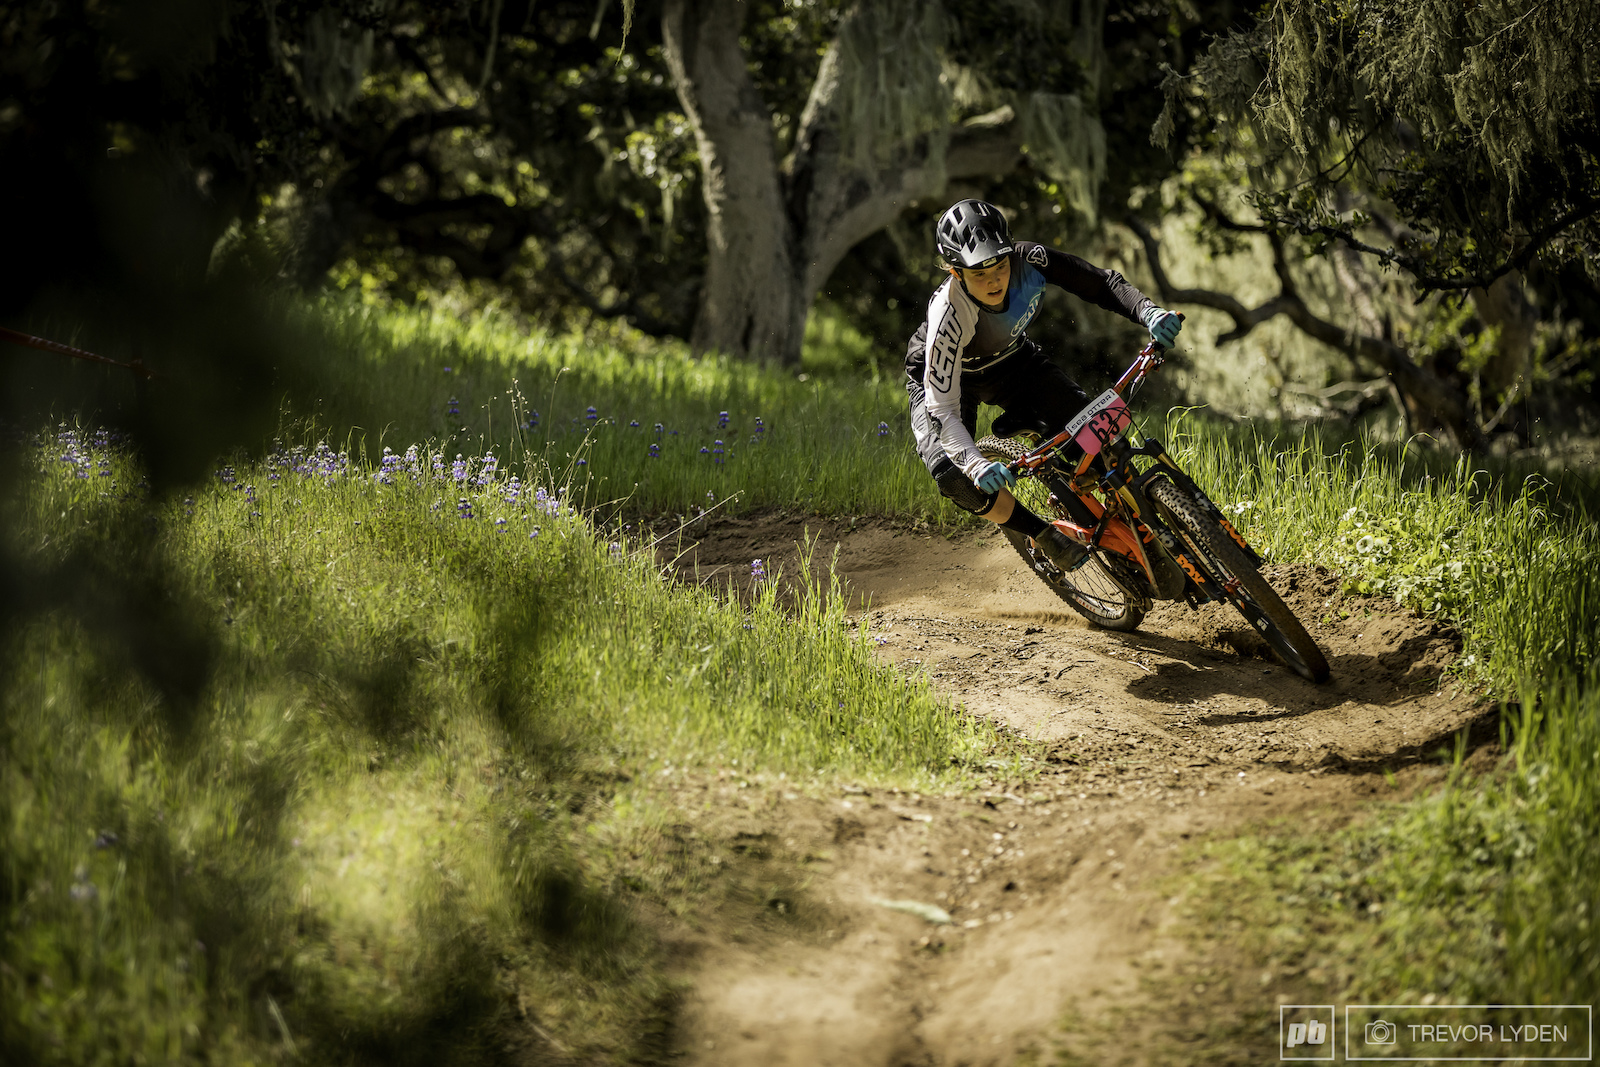 Martha Gill was looking intense and strong all day and took 4th in Pro Women.